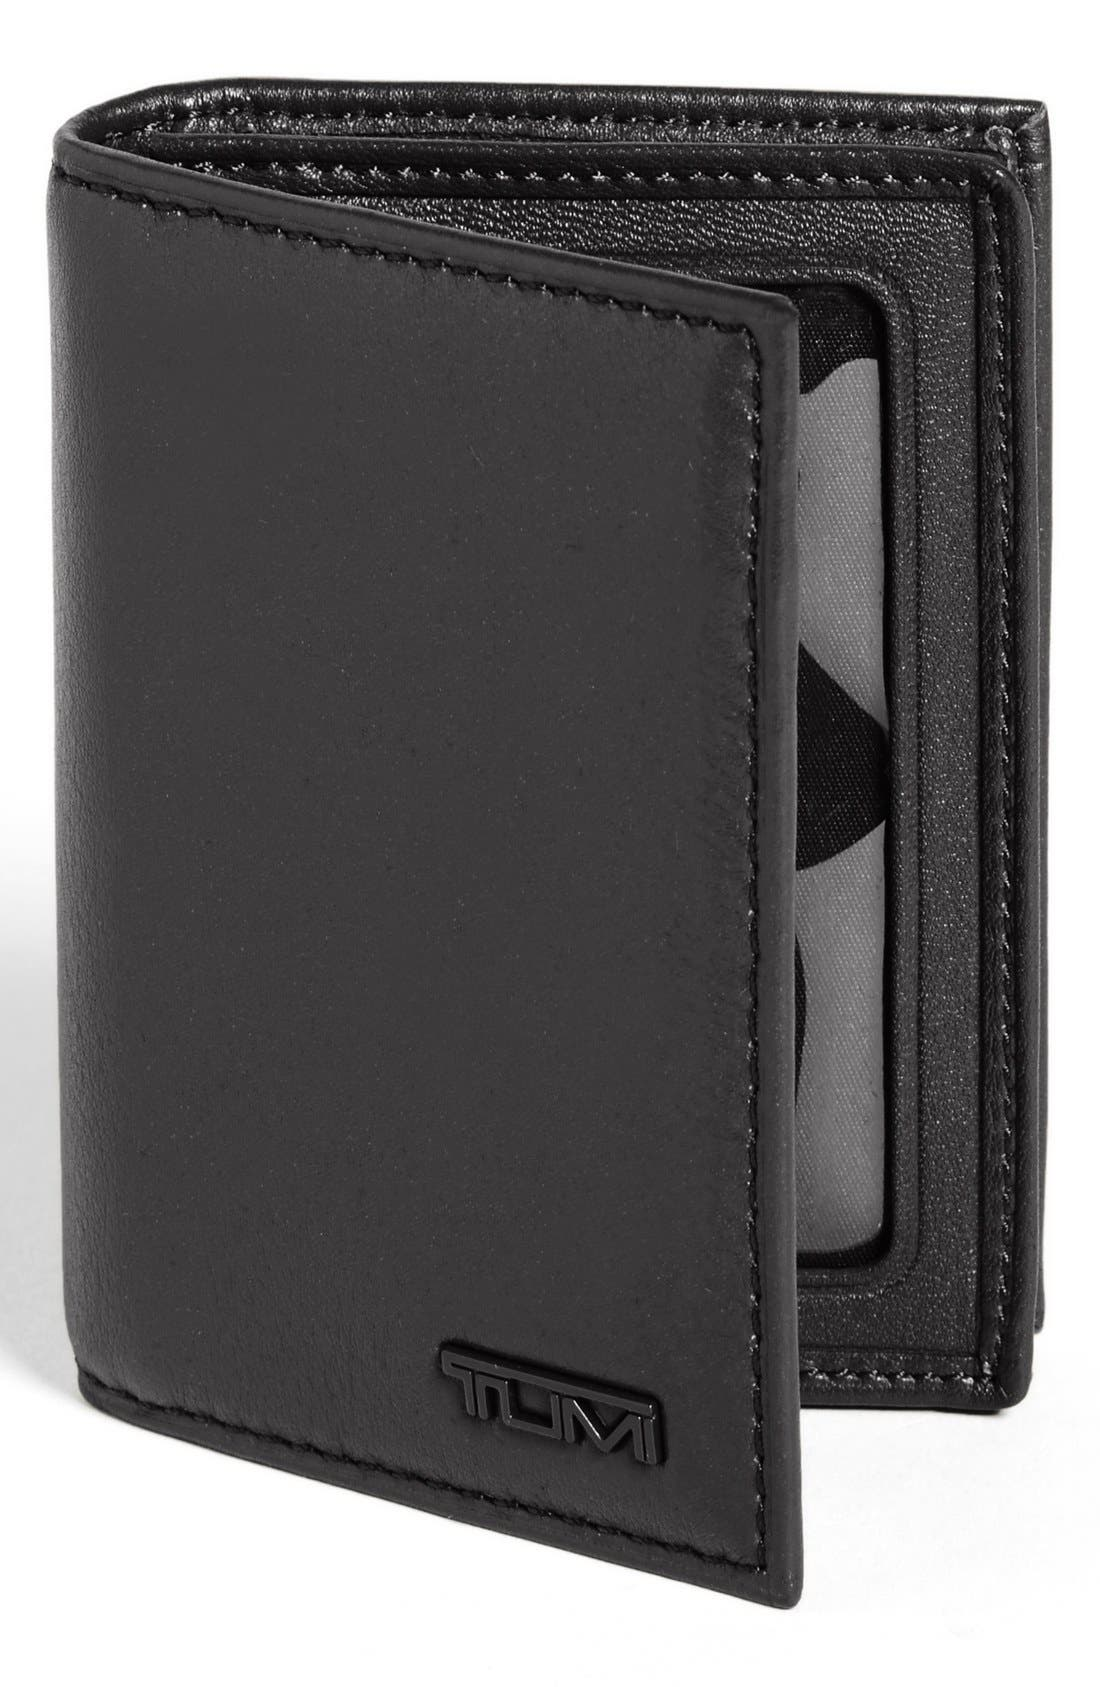 Alternate Image 1 Selected - Tumi 'Delta' Gusseted Leather Card Case